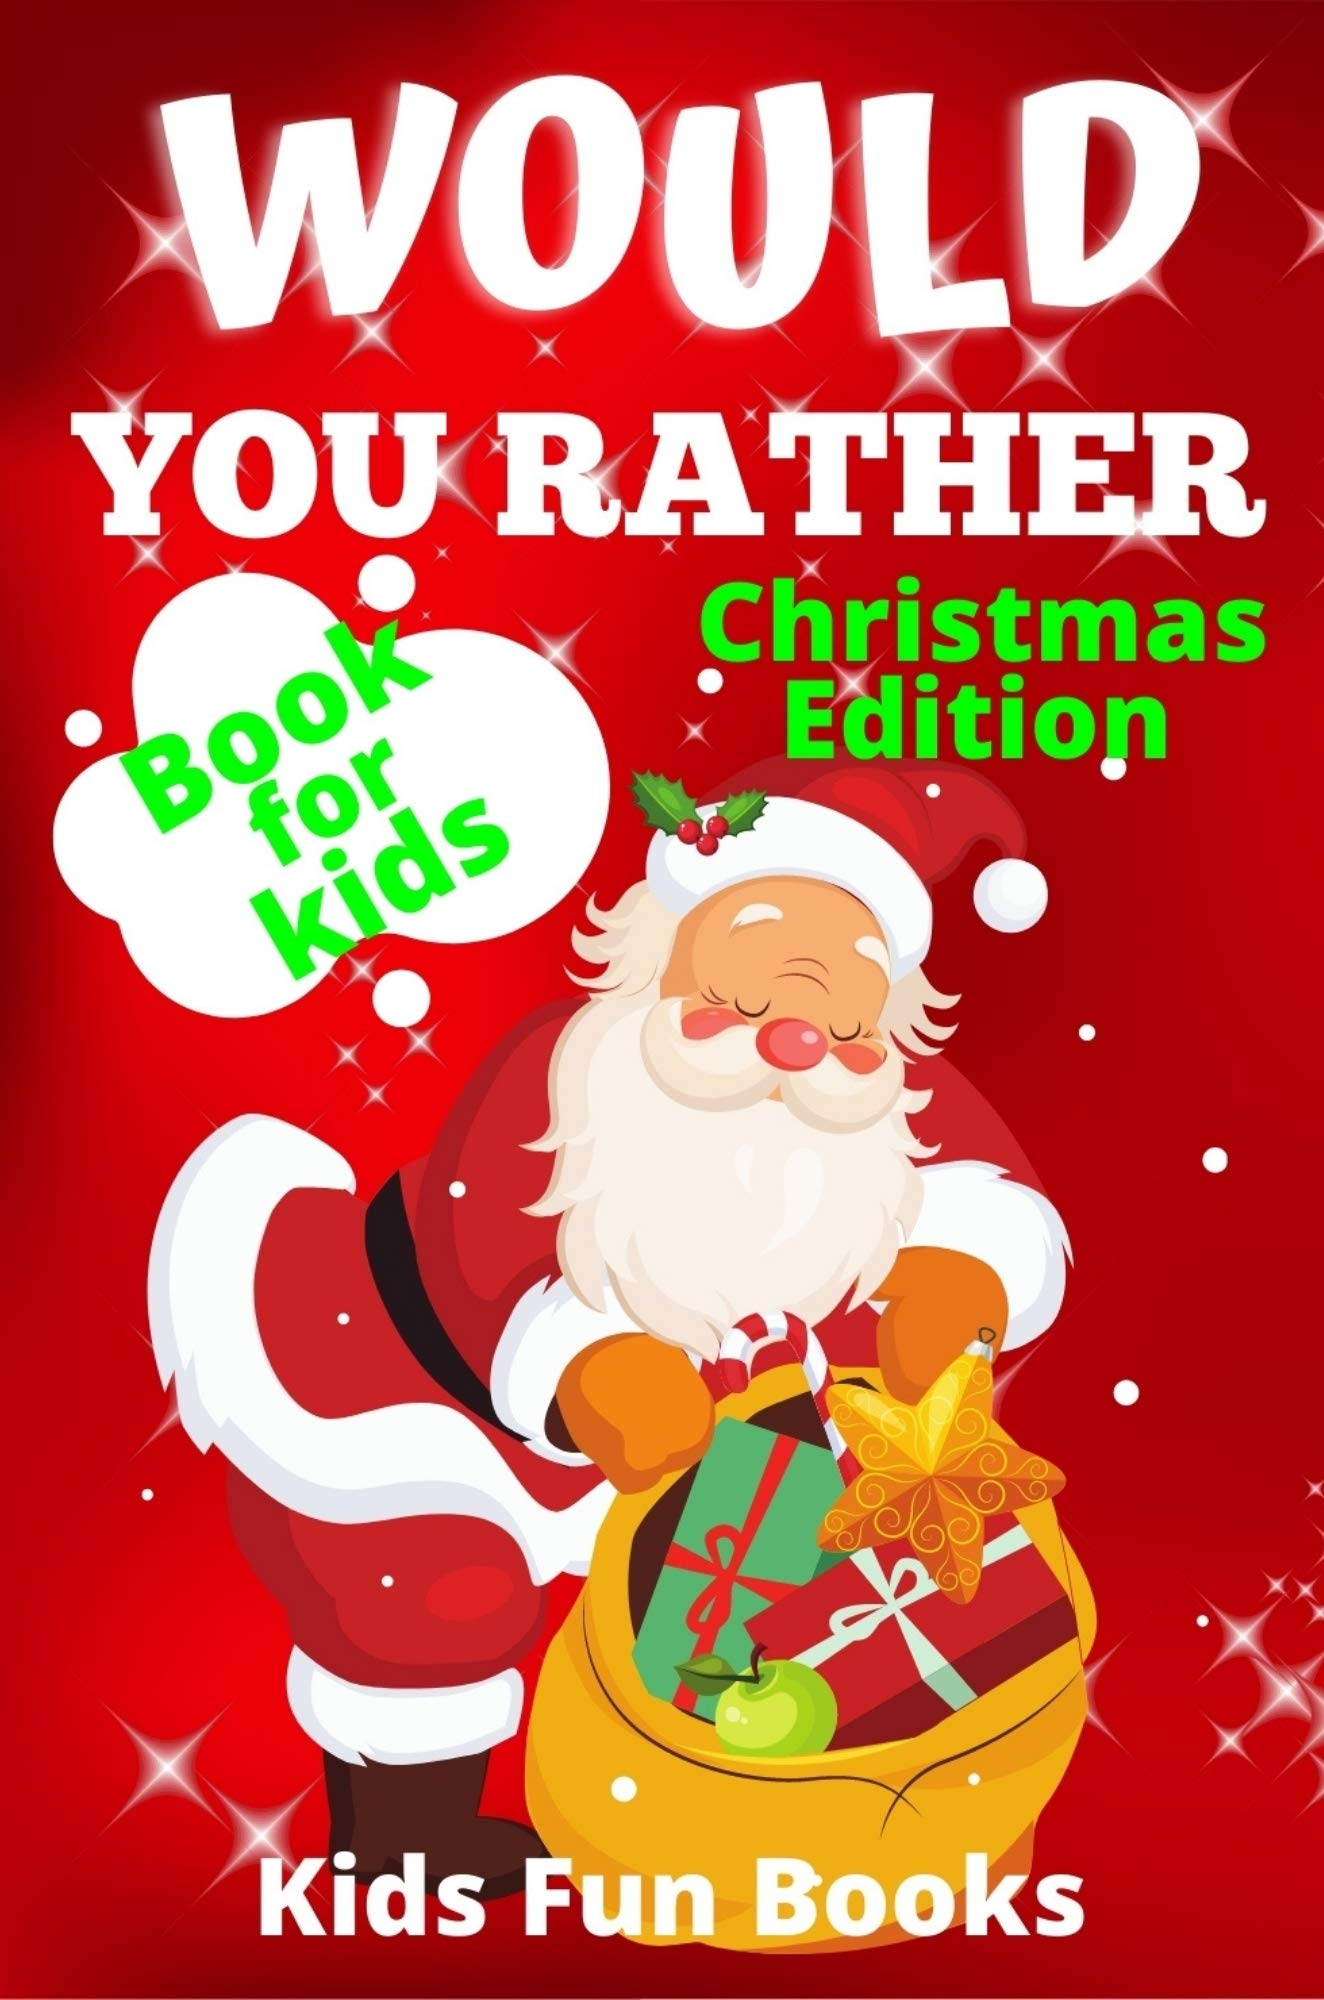 Would You Rather Book For Kids: Christmas Edition | Illustrated - 200+ Interactive Silly Scenarios, Crazy Choices & Hilarious Situations To Enjoy With Kids (Christmas Books)